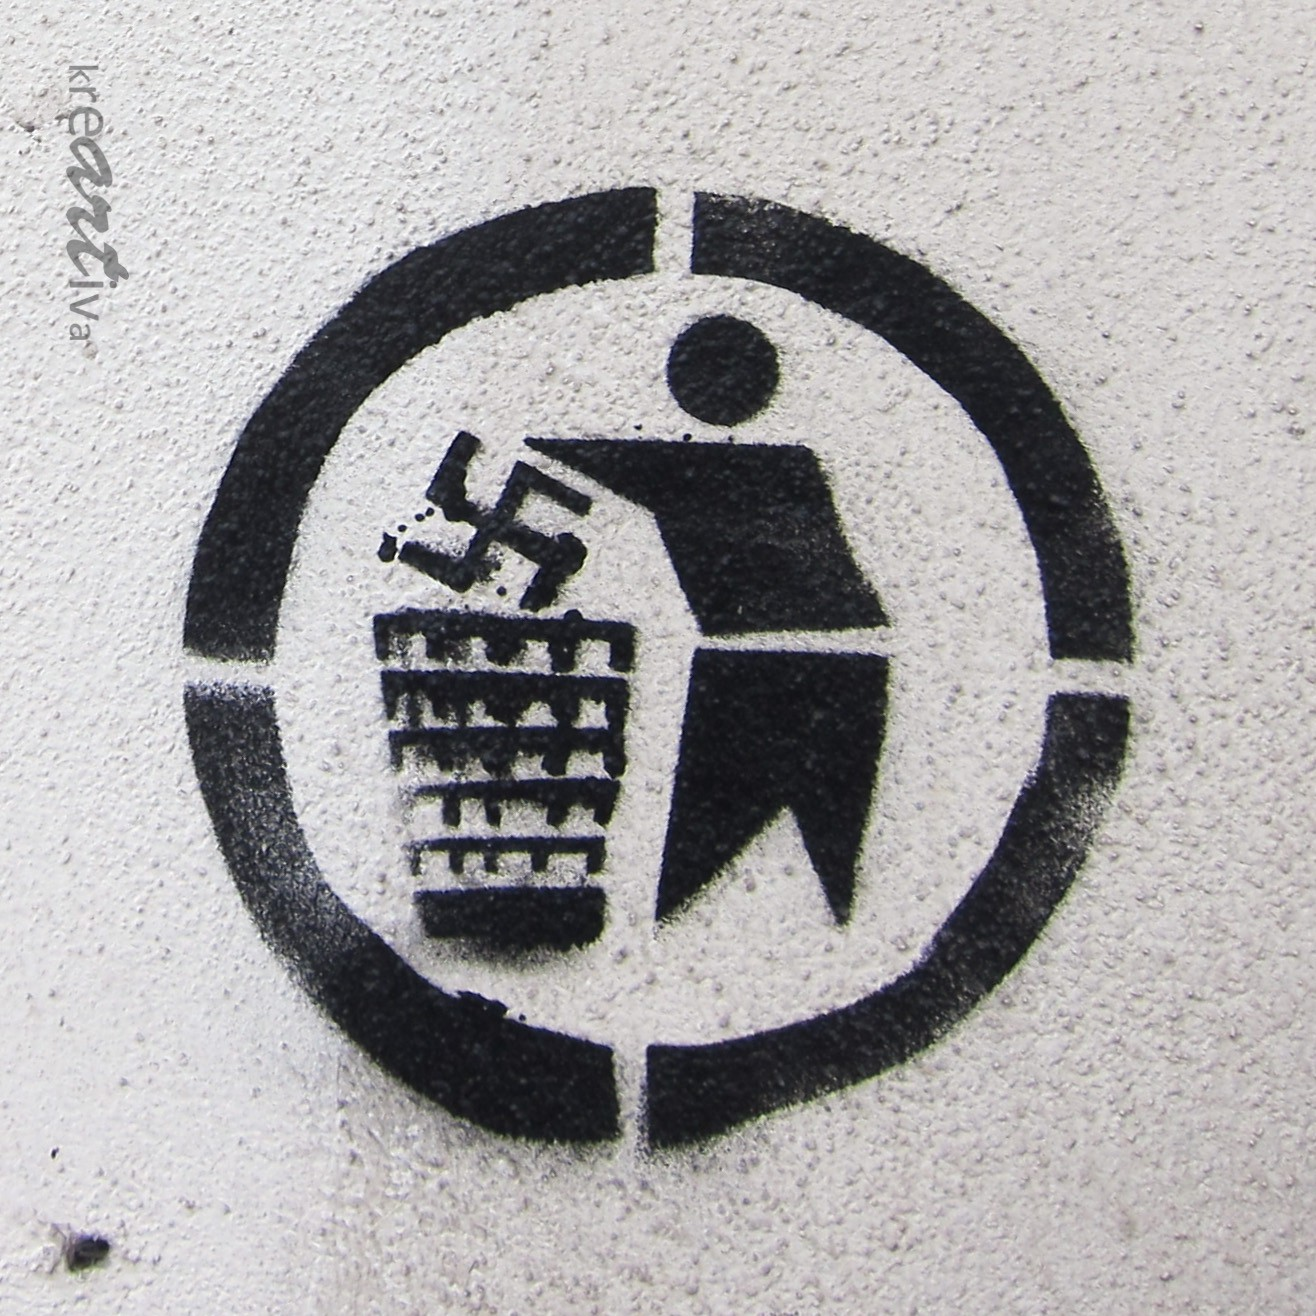 Please dispose of swastika properly – Hakenkreuz bitte fachgerecht entsorgen, Erlangen Germany 2014.